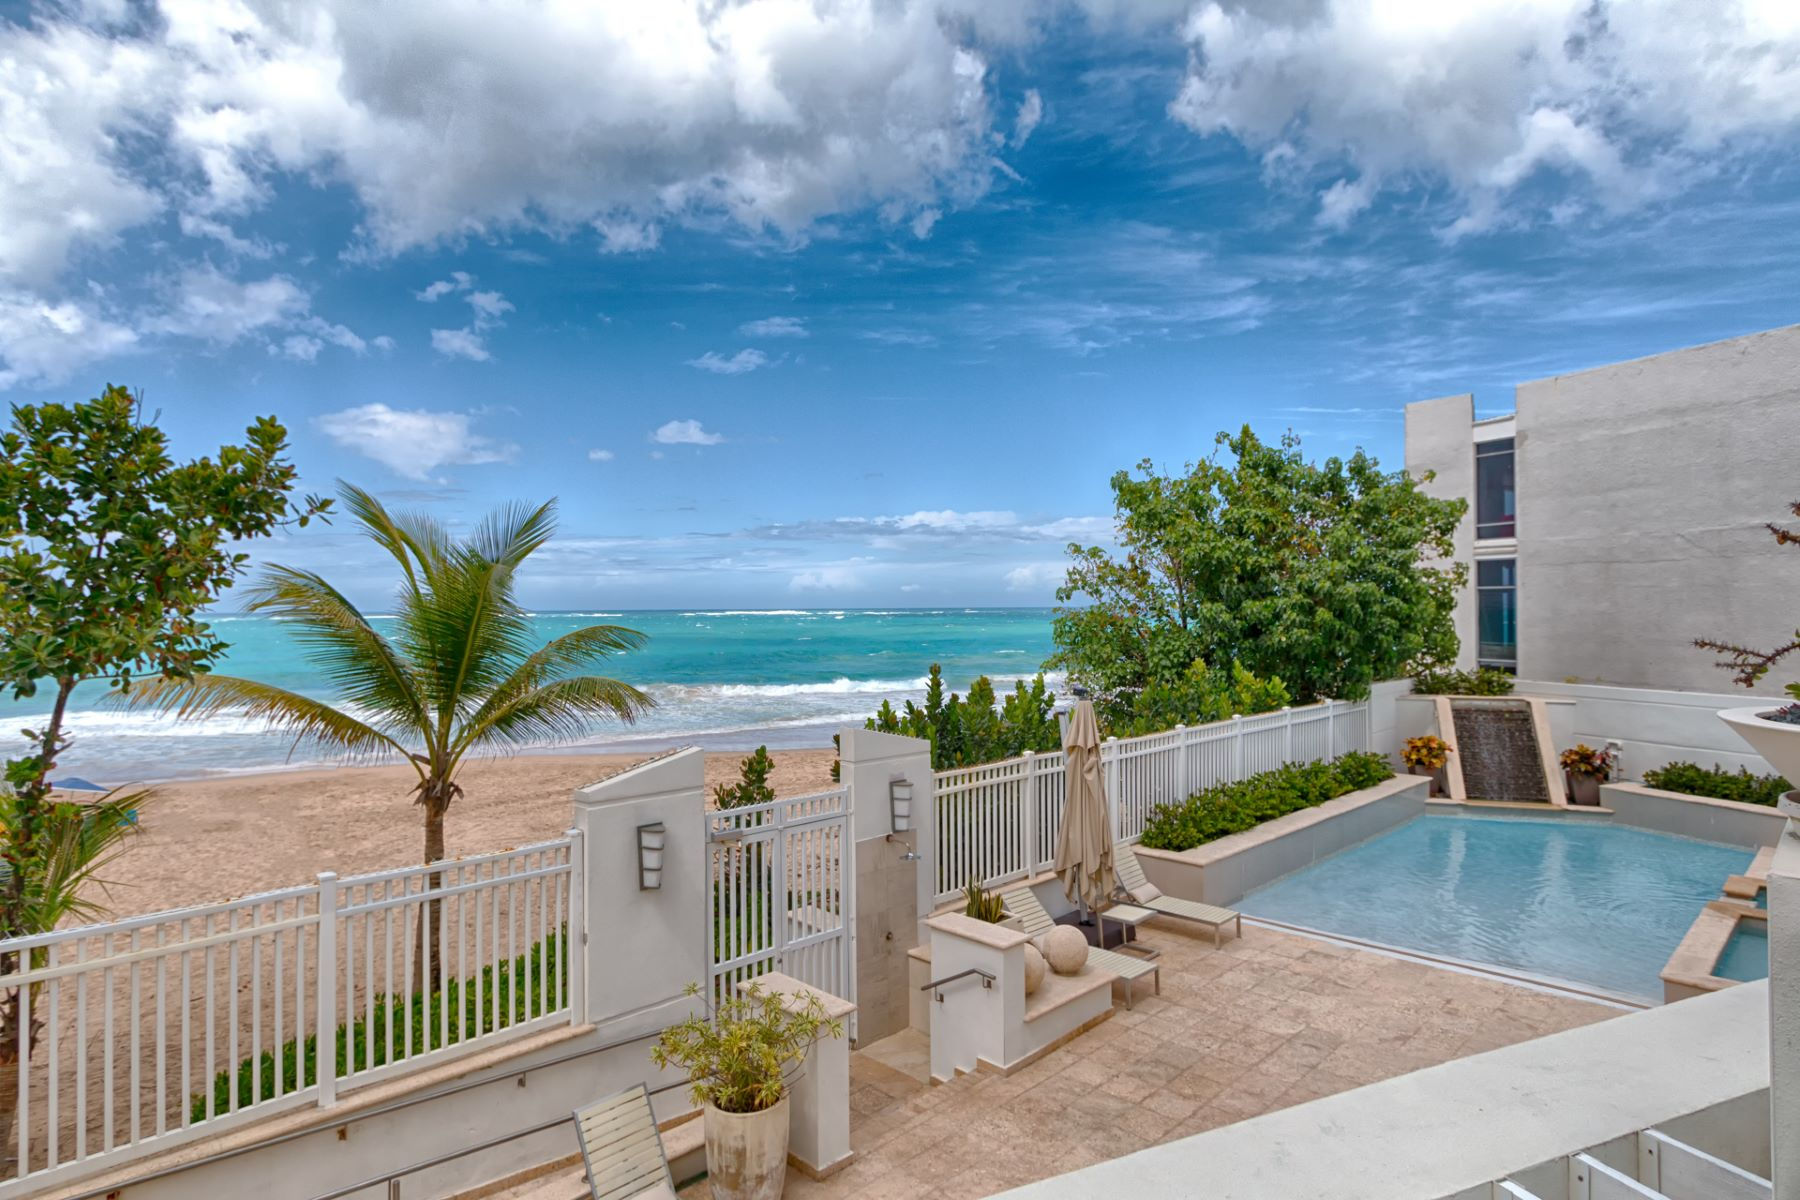 Additional photo for property listing at Ocean Front at Aquamarina 1315 Ashford Avenue San Juan, Puerto Rico 00907 Puerto Rico